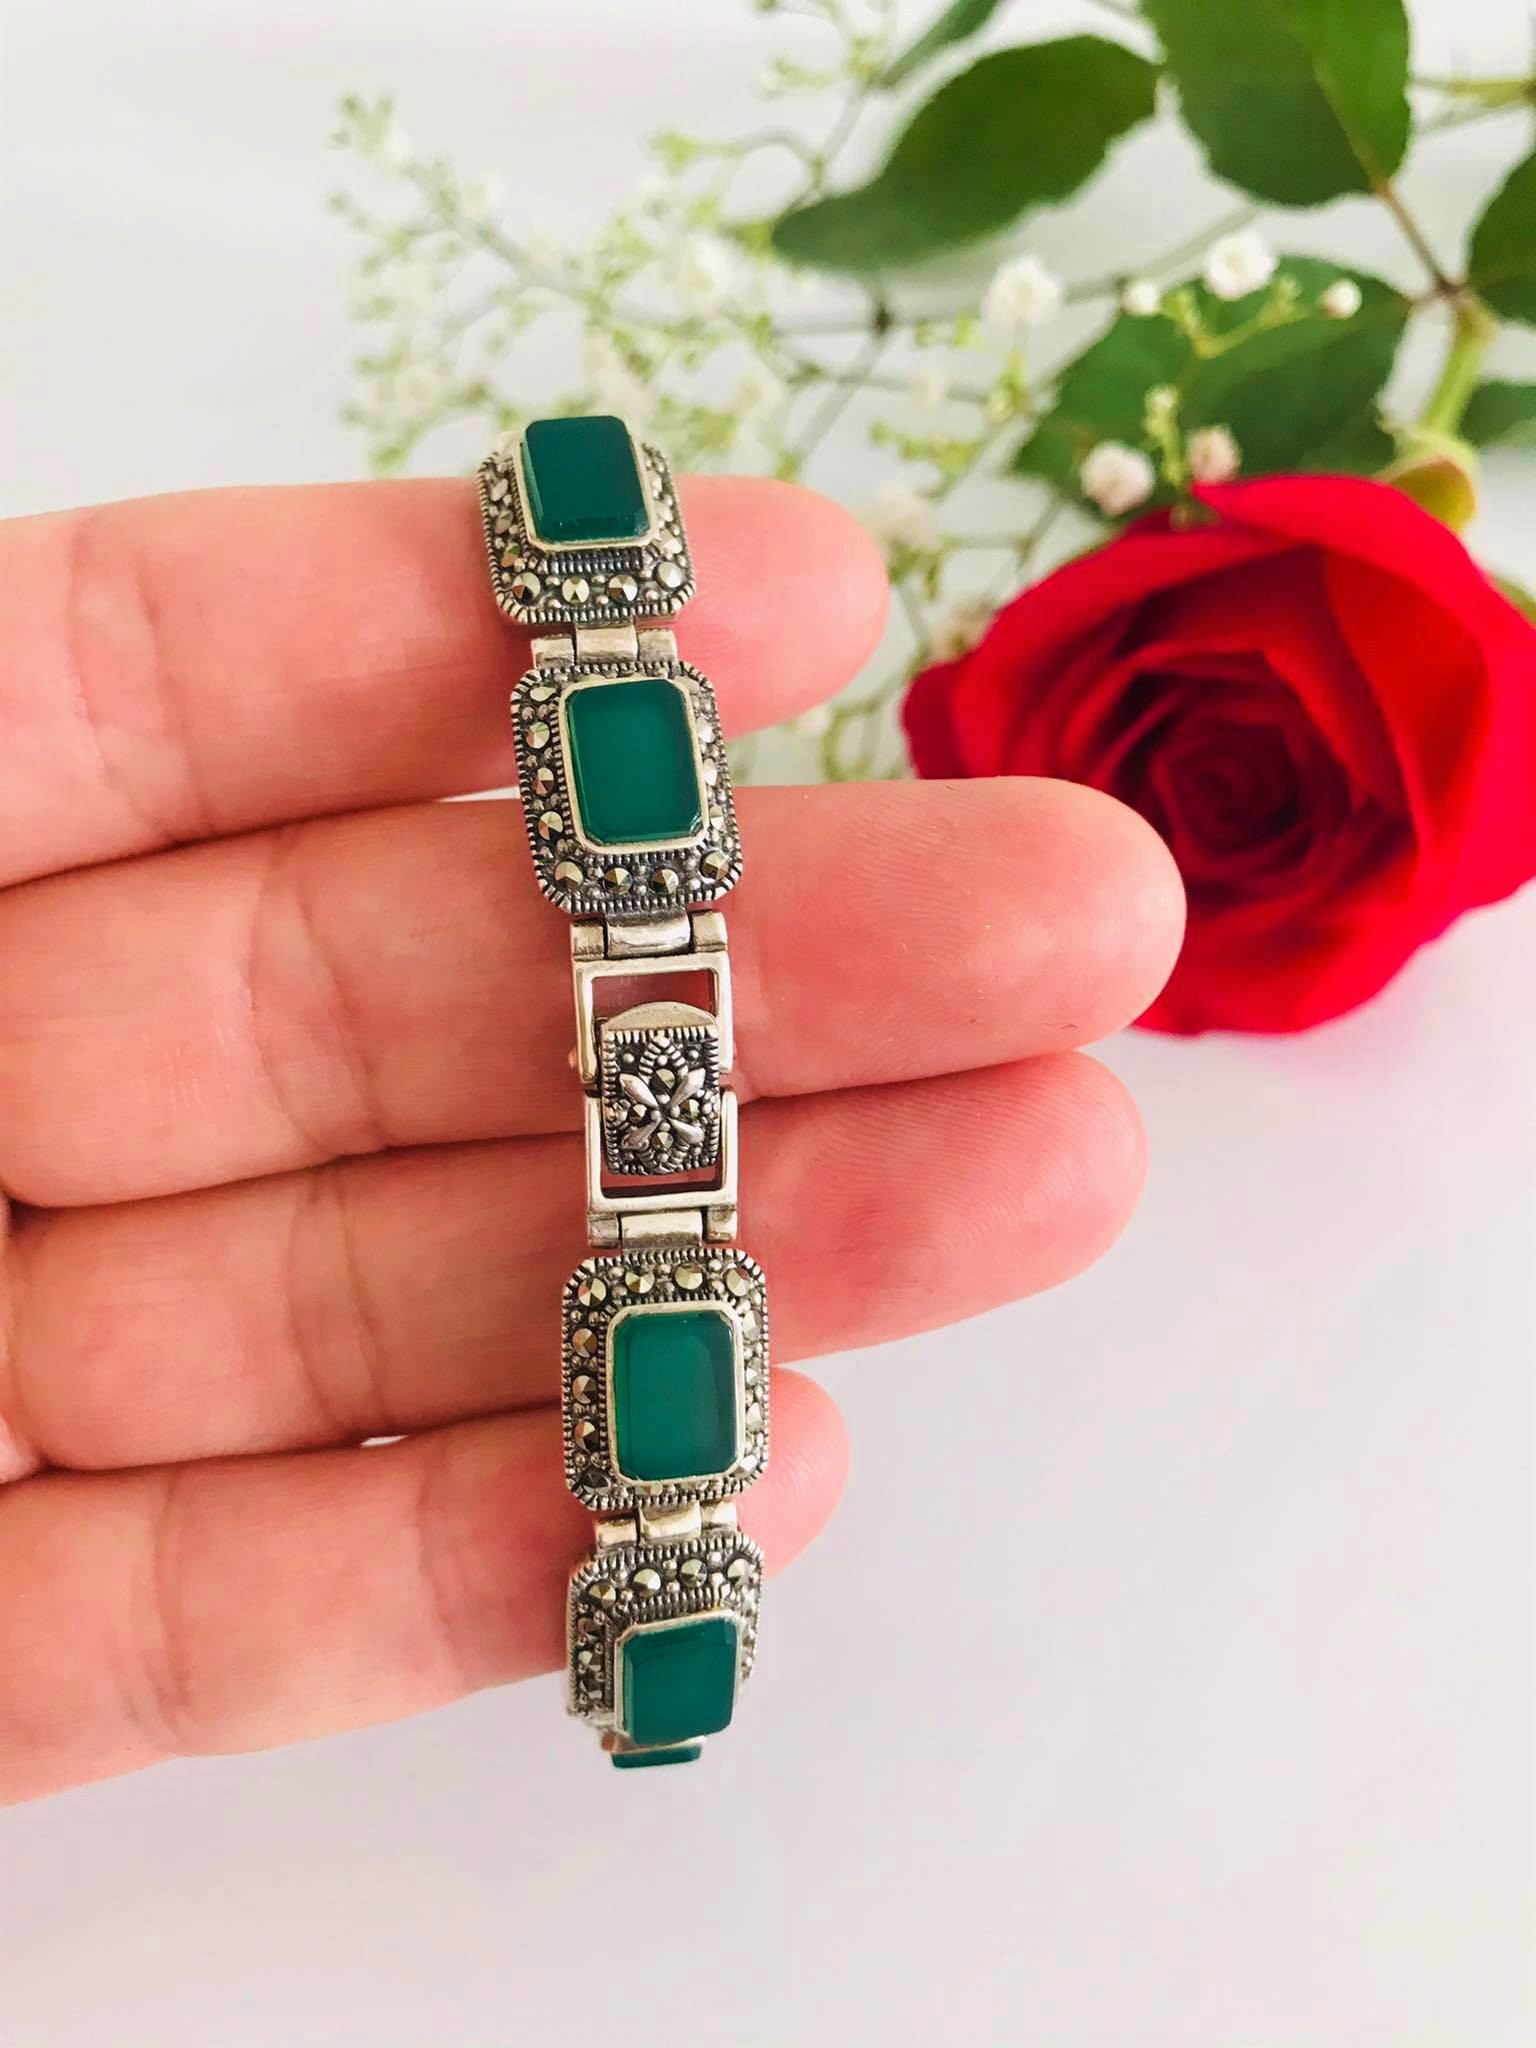 Stunning High Polished Natural Green Onyx Surrounded by Sparking Marcasite Sterling Silver Bracelet Image